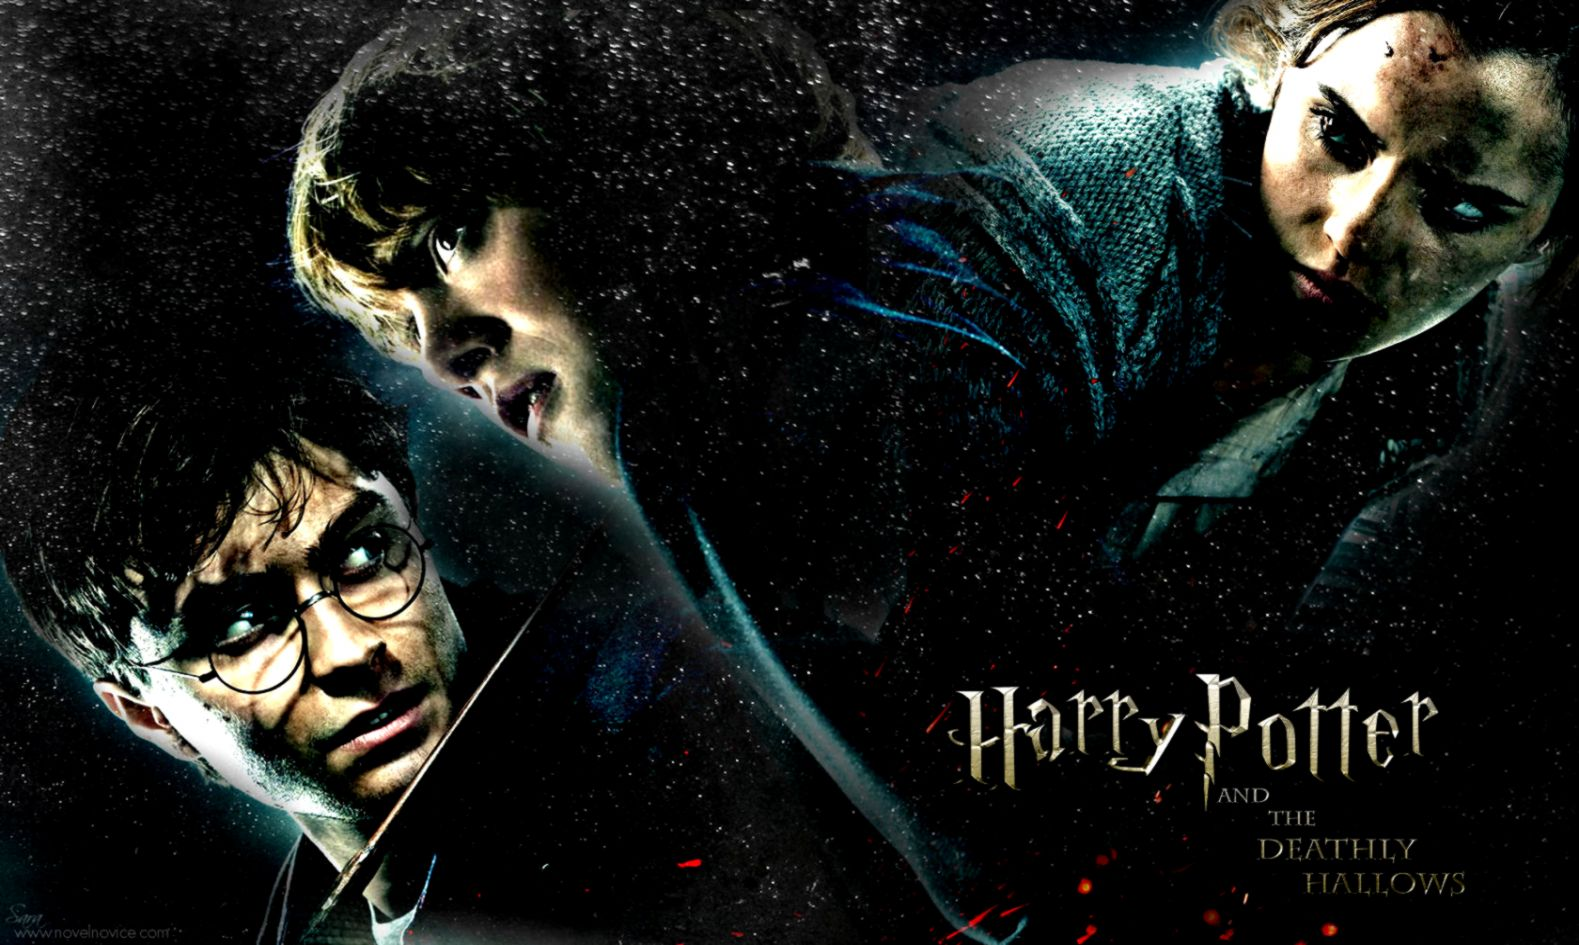 Harry Potter And The Deathly Hallows Poster Free Wallpapers Full